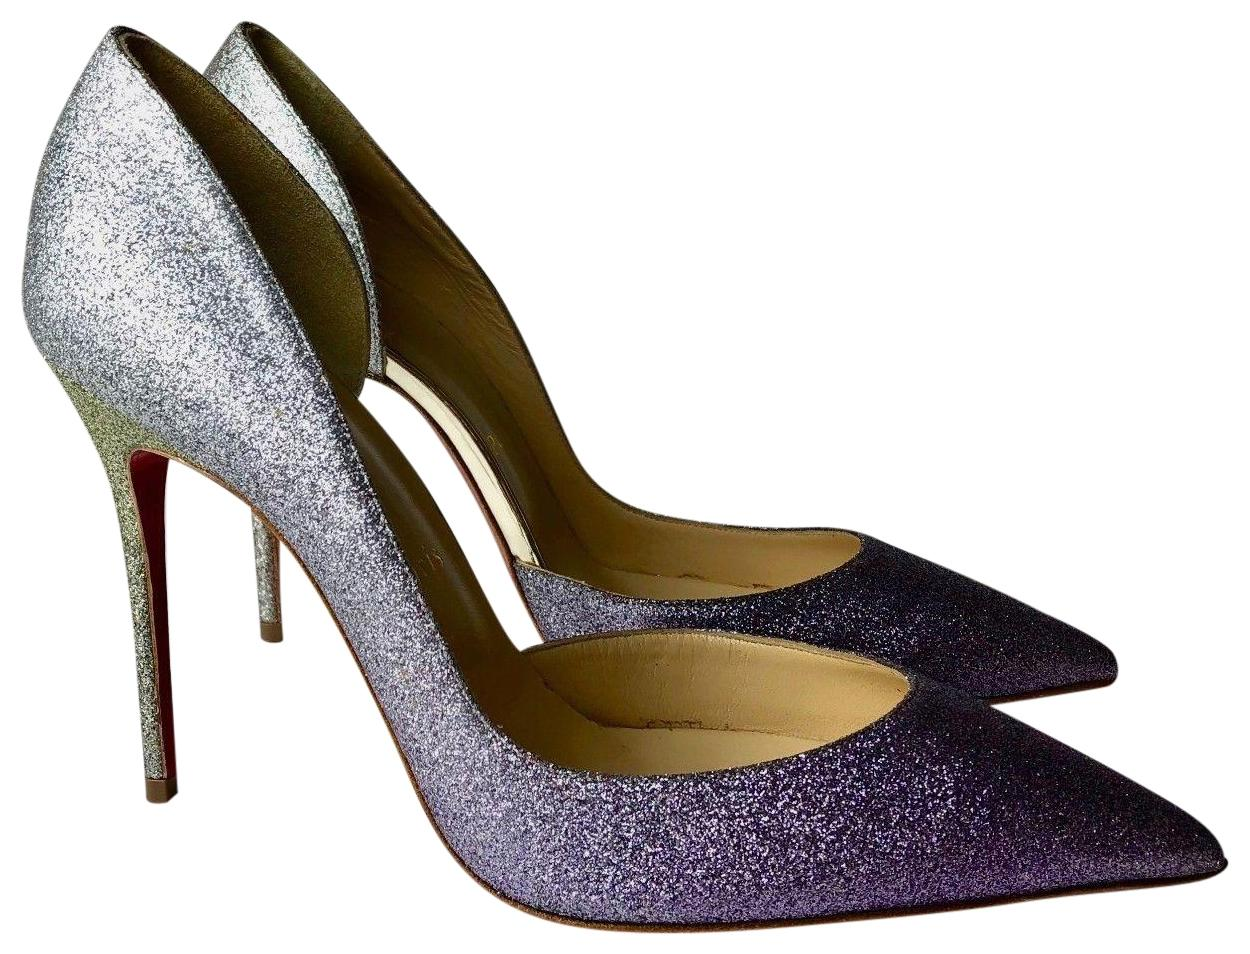 033535053cb2 Christian Louboutin Purple Silver Gold Iriza 100 Glitter Degrade Pumps  Pumps Pumps Size EU 37.5 (Approx. US 7.5) Regular (M